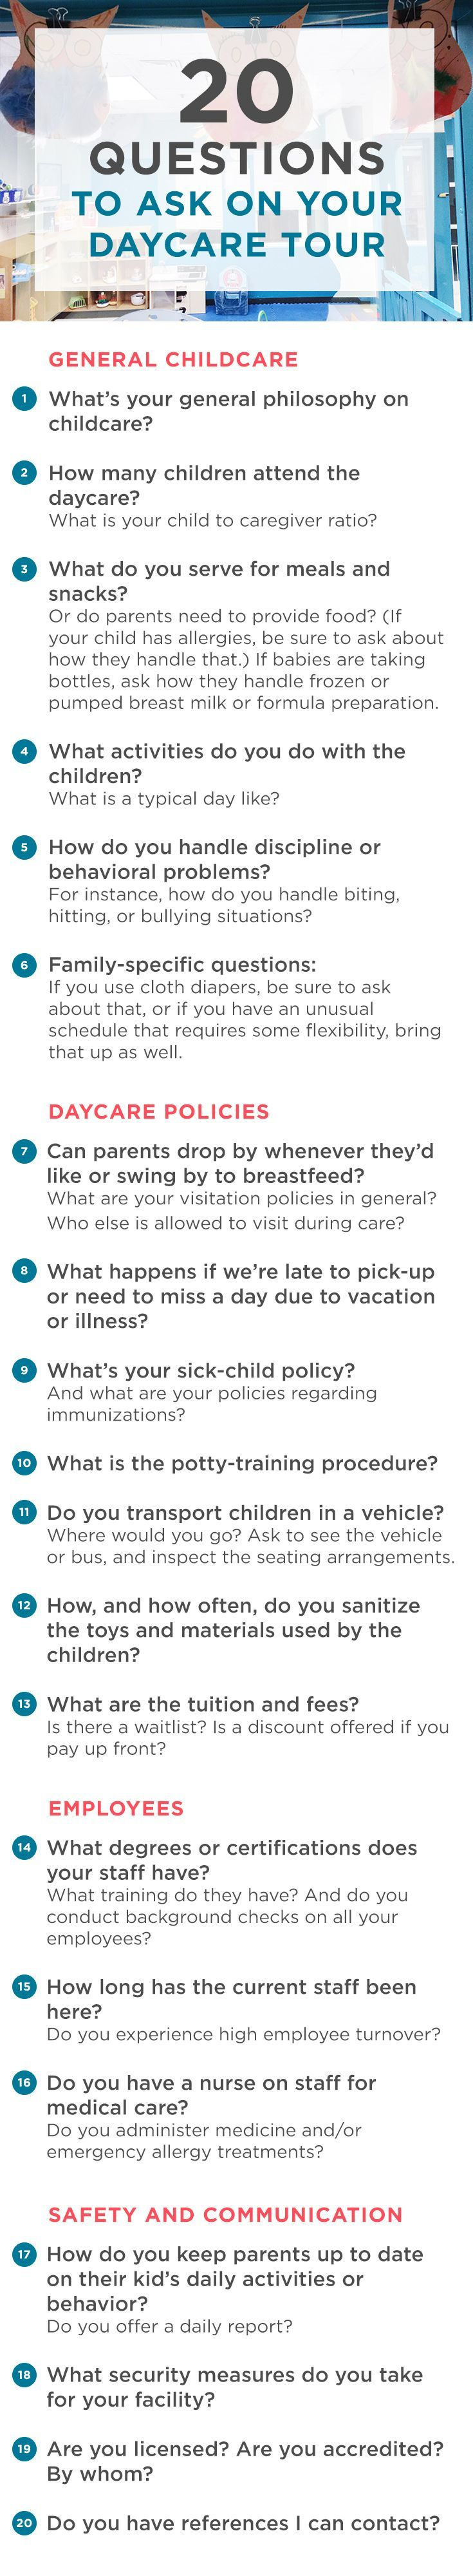 Read this before you tour your first daycare.